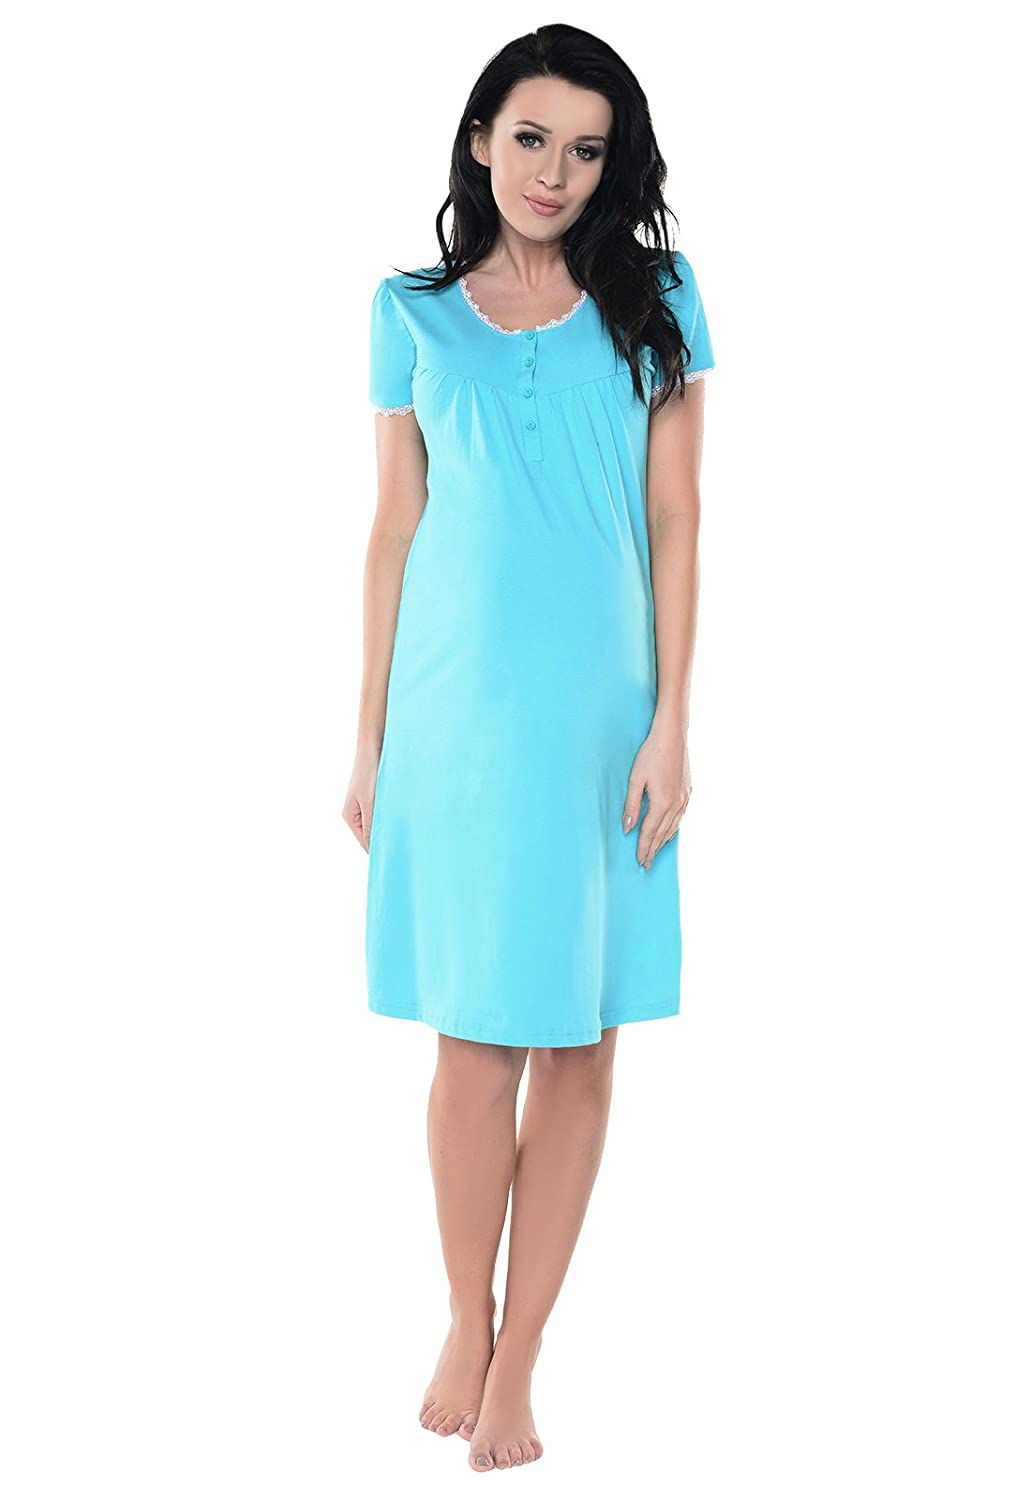 6dd74f624e3 Purpless Maternity Pregnancy Nursing Nightie Lace Detail Nightdress for Pregnant  Breastfeeding Women 6066n  Amazon.ca  Clothing   Accessories